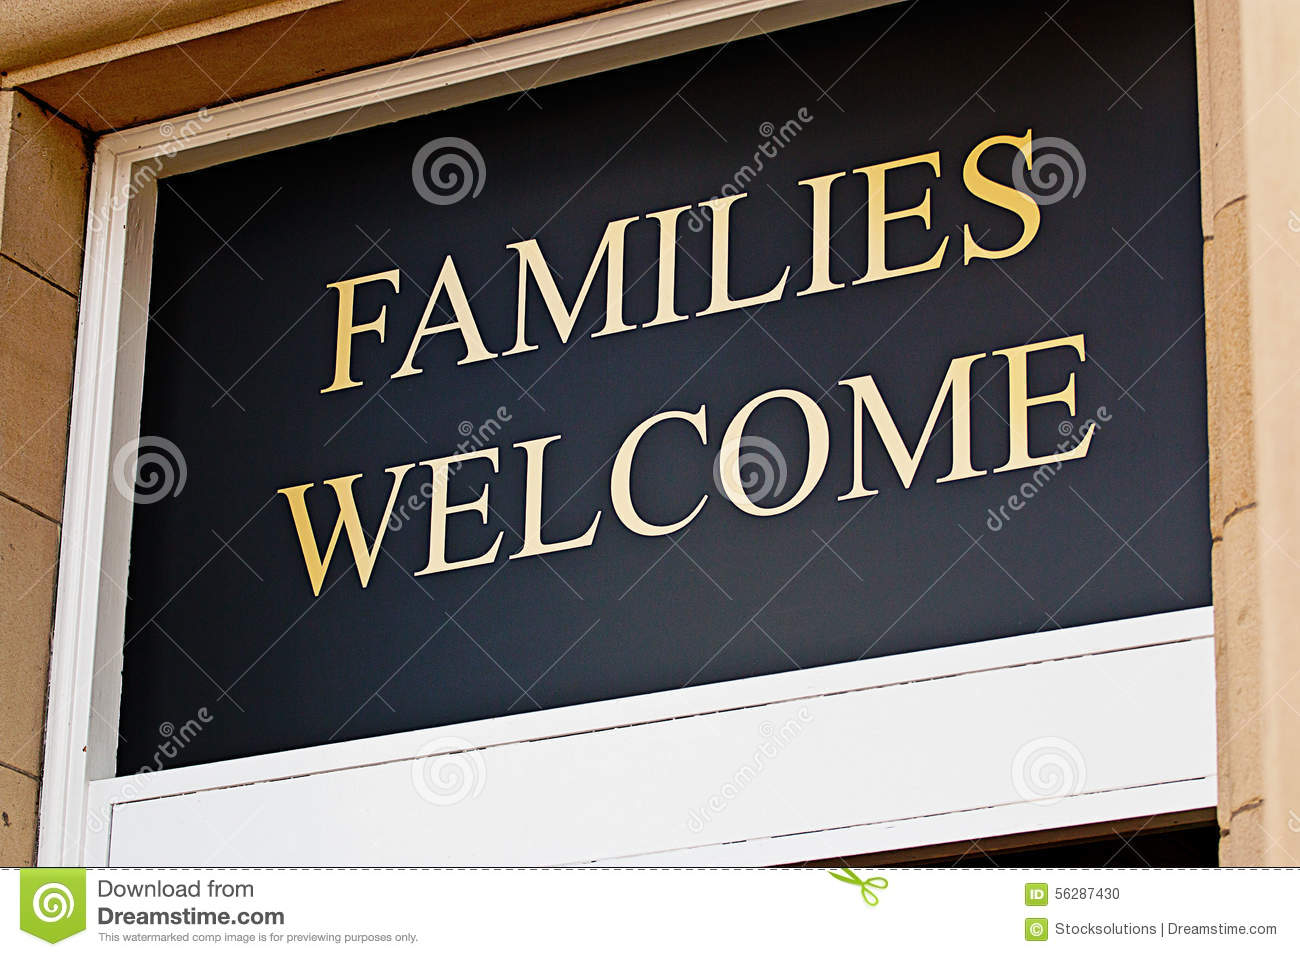 Families welcome sign